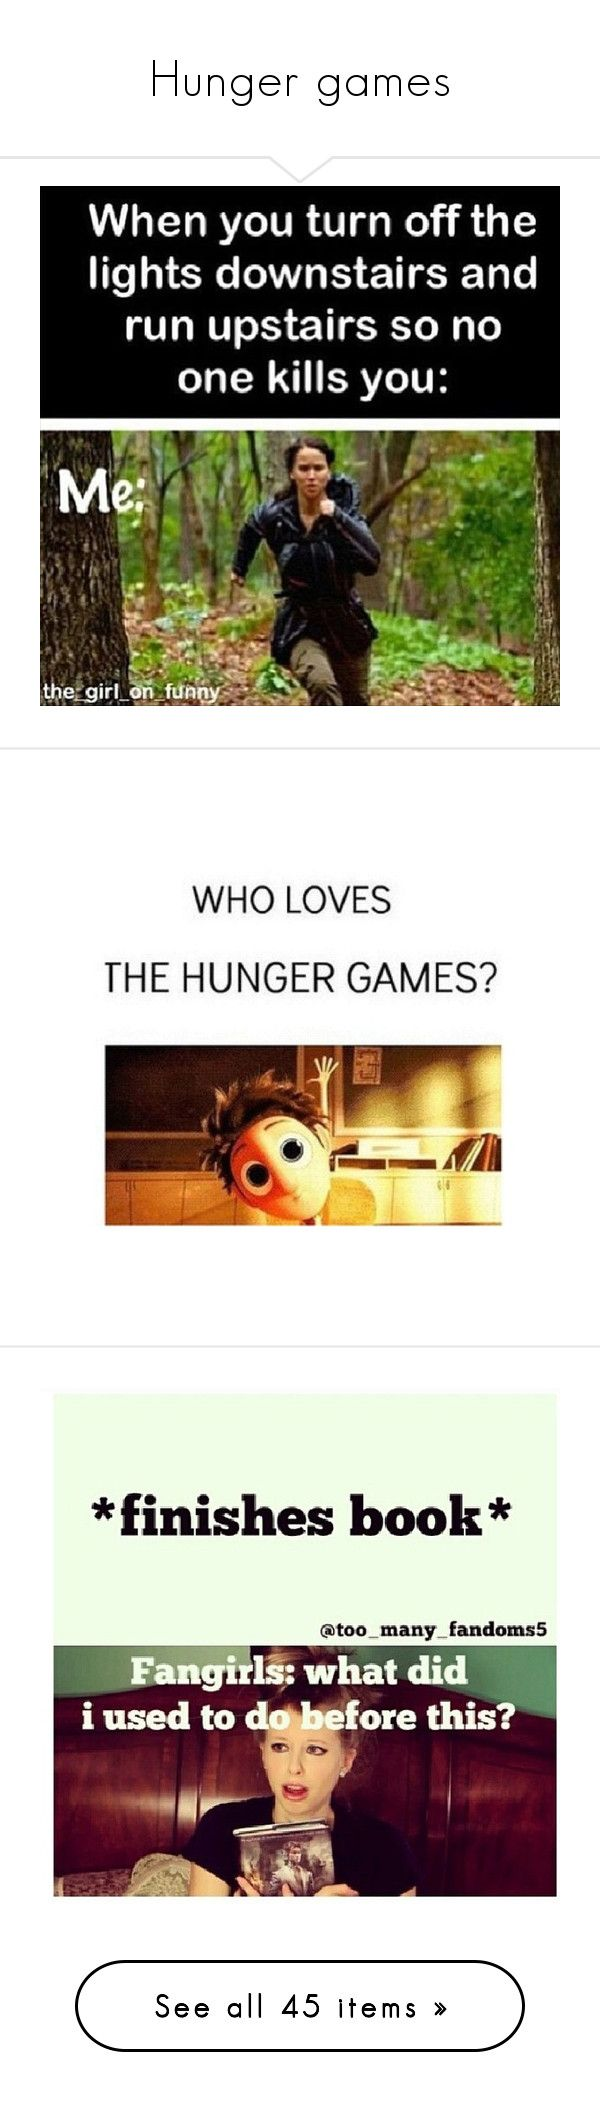 """Hunger games"" by shy-love ❤ liked on Polyvore featuring quotes, funny, pictures, random, backgrounds, fillers, text, phrase, saying and hunger games"